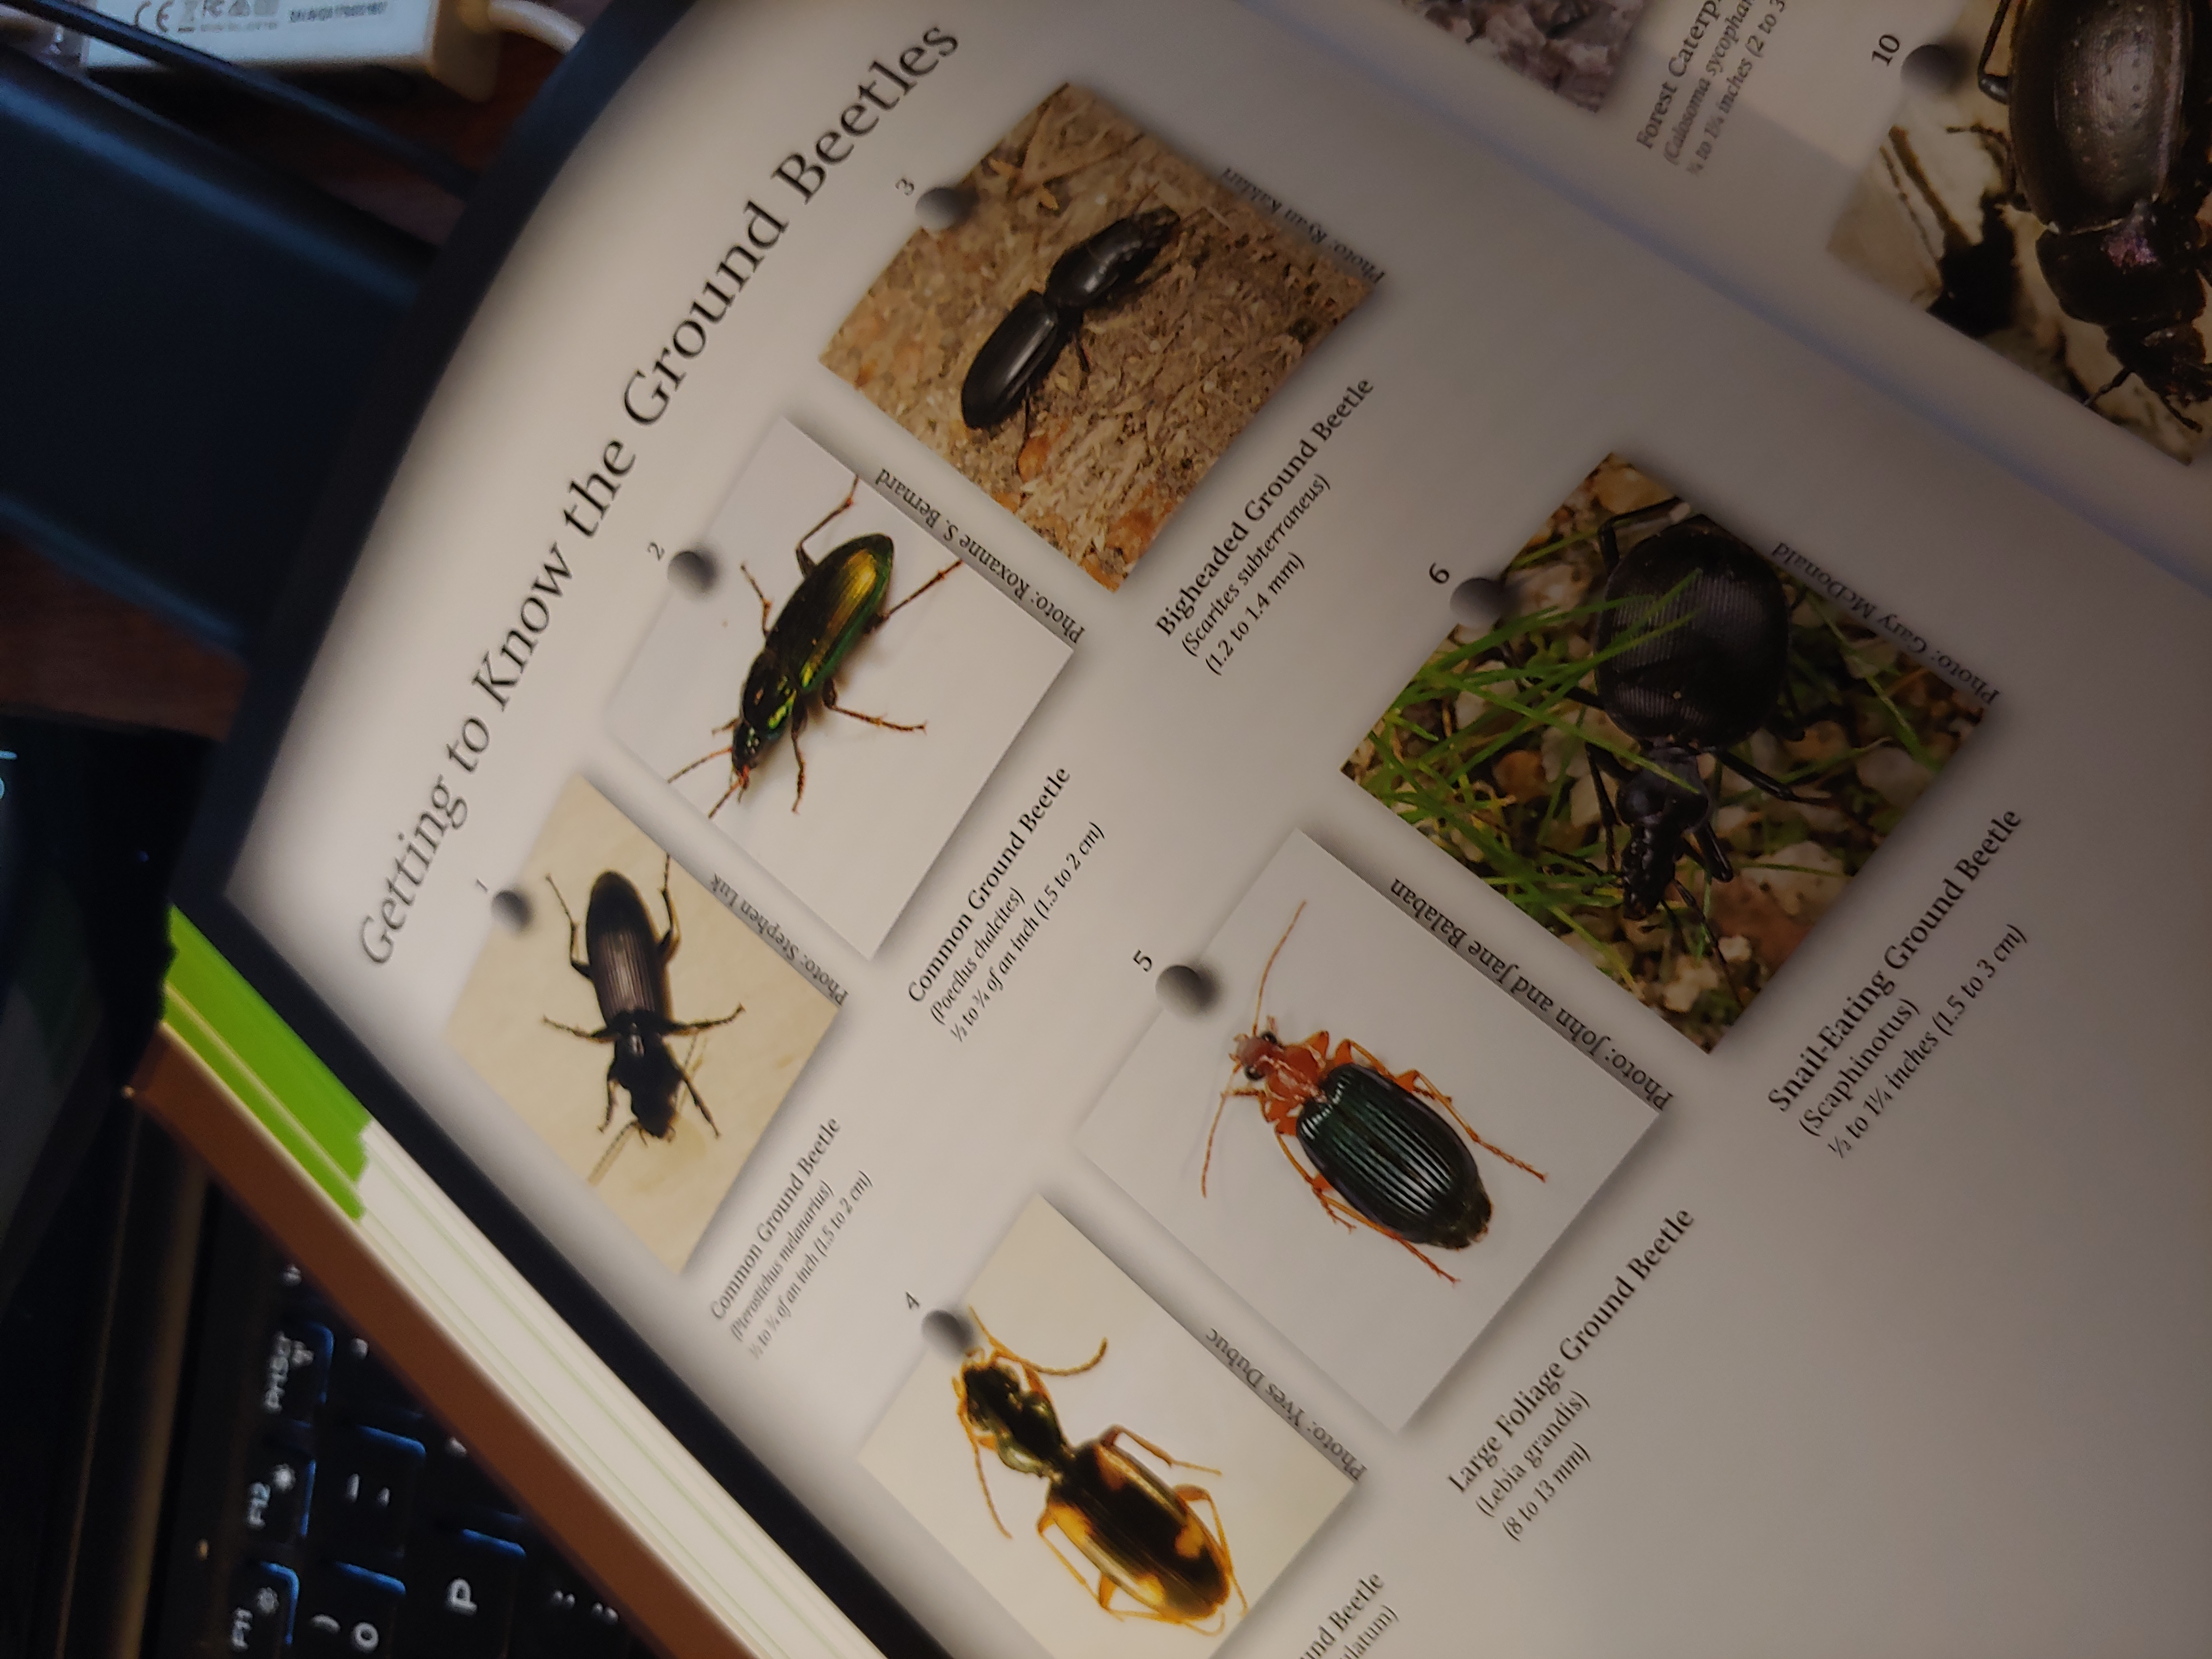 Photo of page from Mary Gardiner's Book, Good Garden Bugs